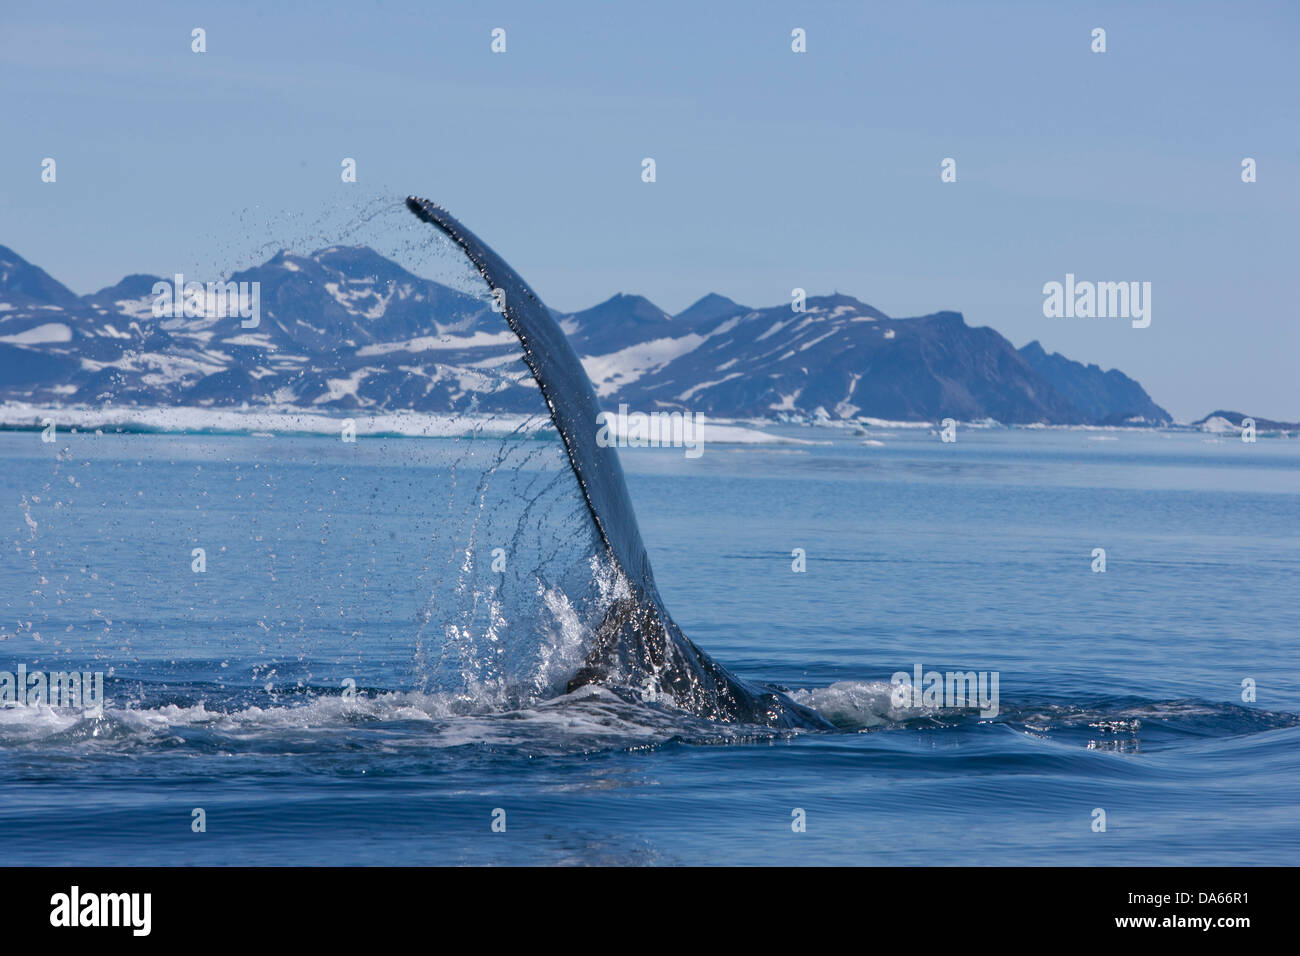 Whale watching, whale observation, humpback whale, Greenland, East Greenland, whale, whales, - Stock Image